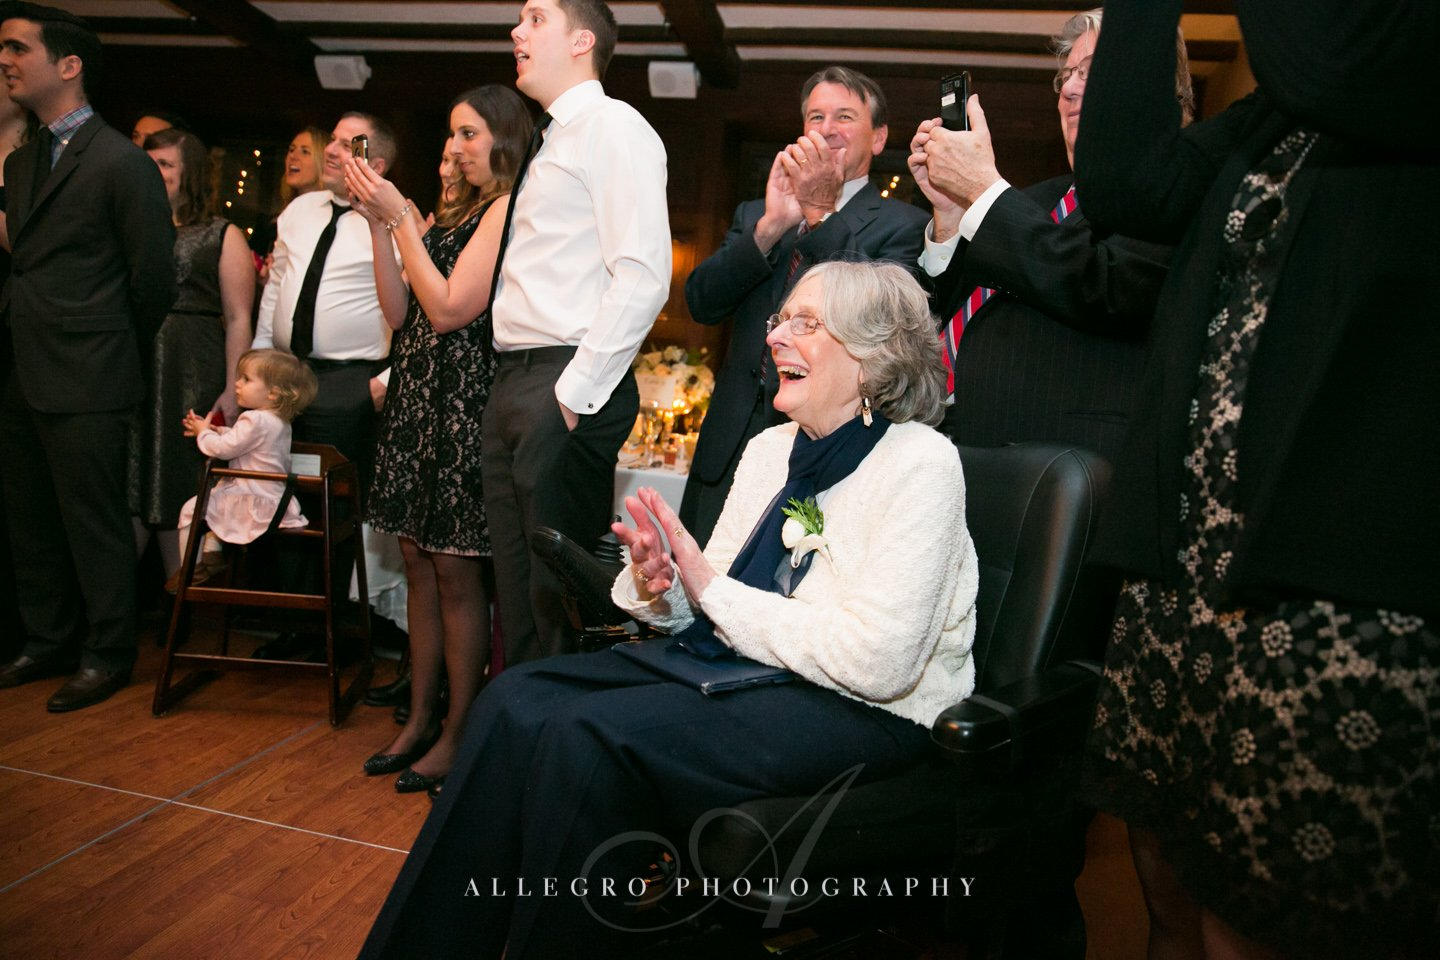 grandmother at wedding- photo by allegro photography